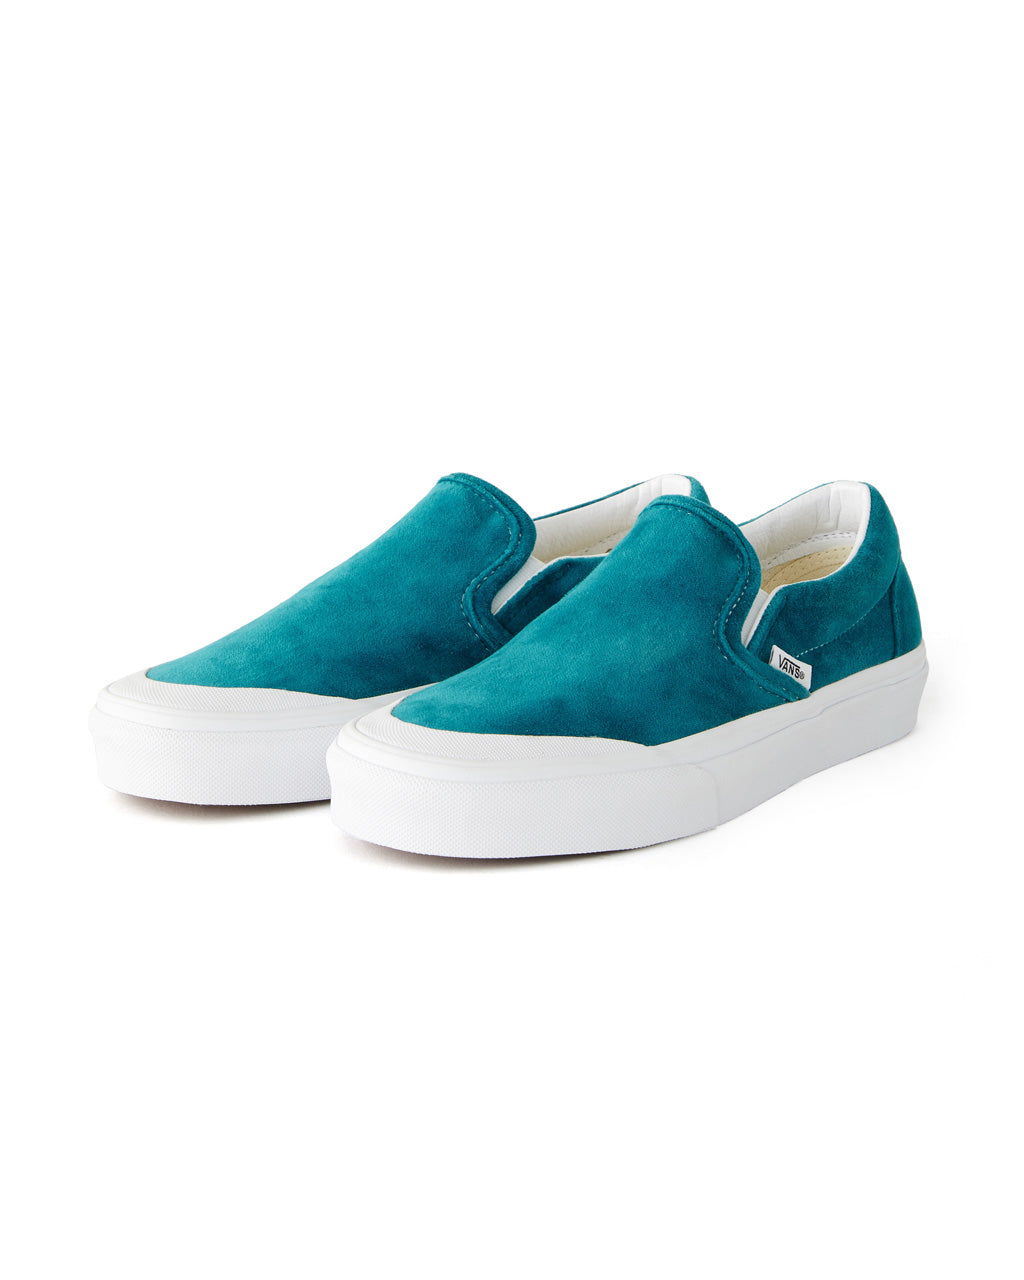 Classic slip on sneakers in velvet blue.